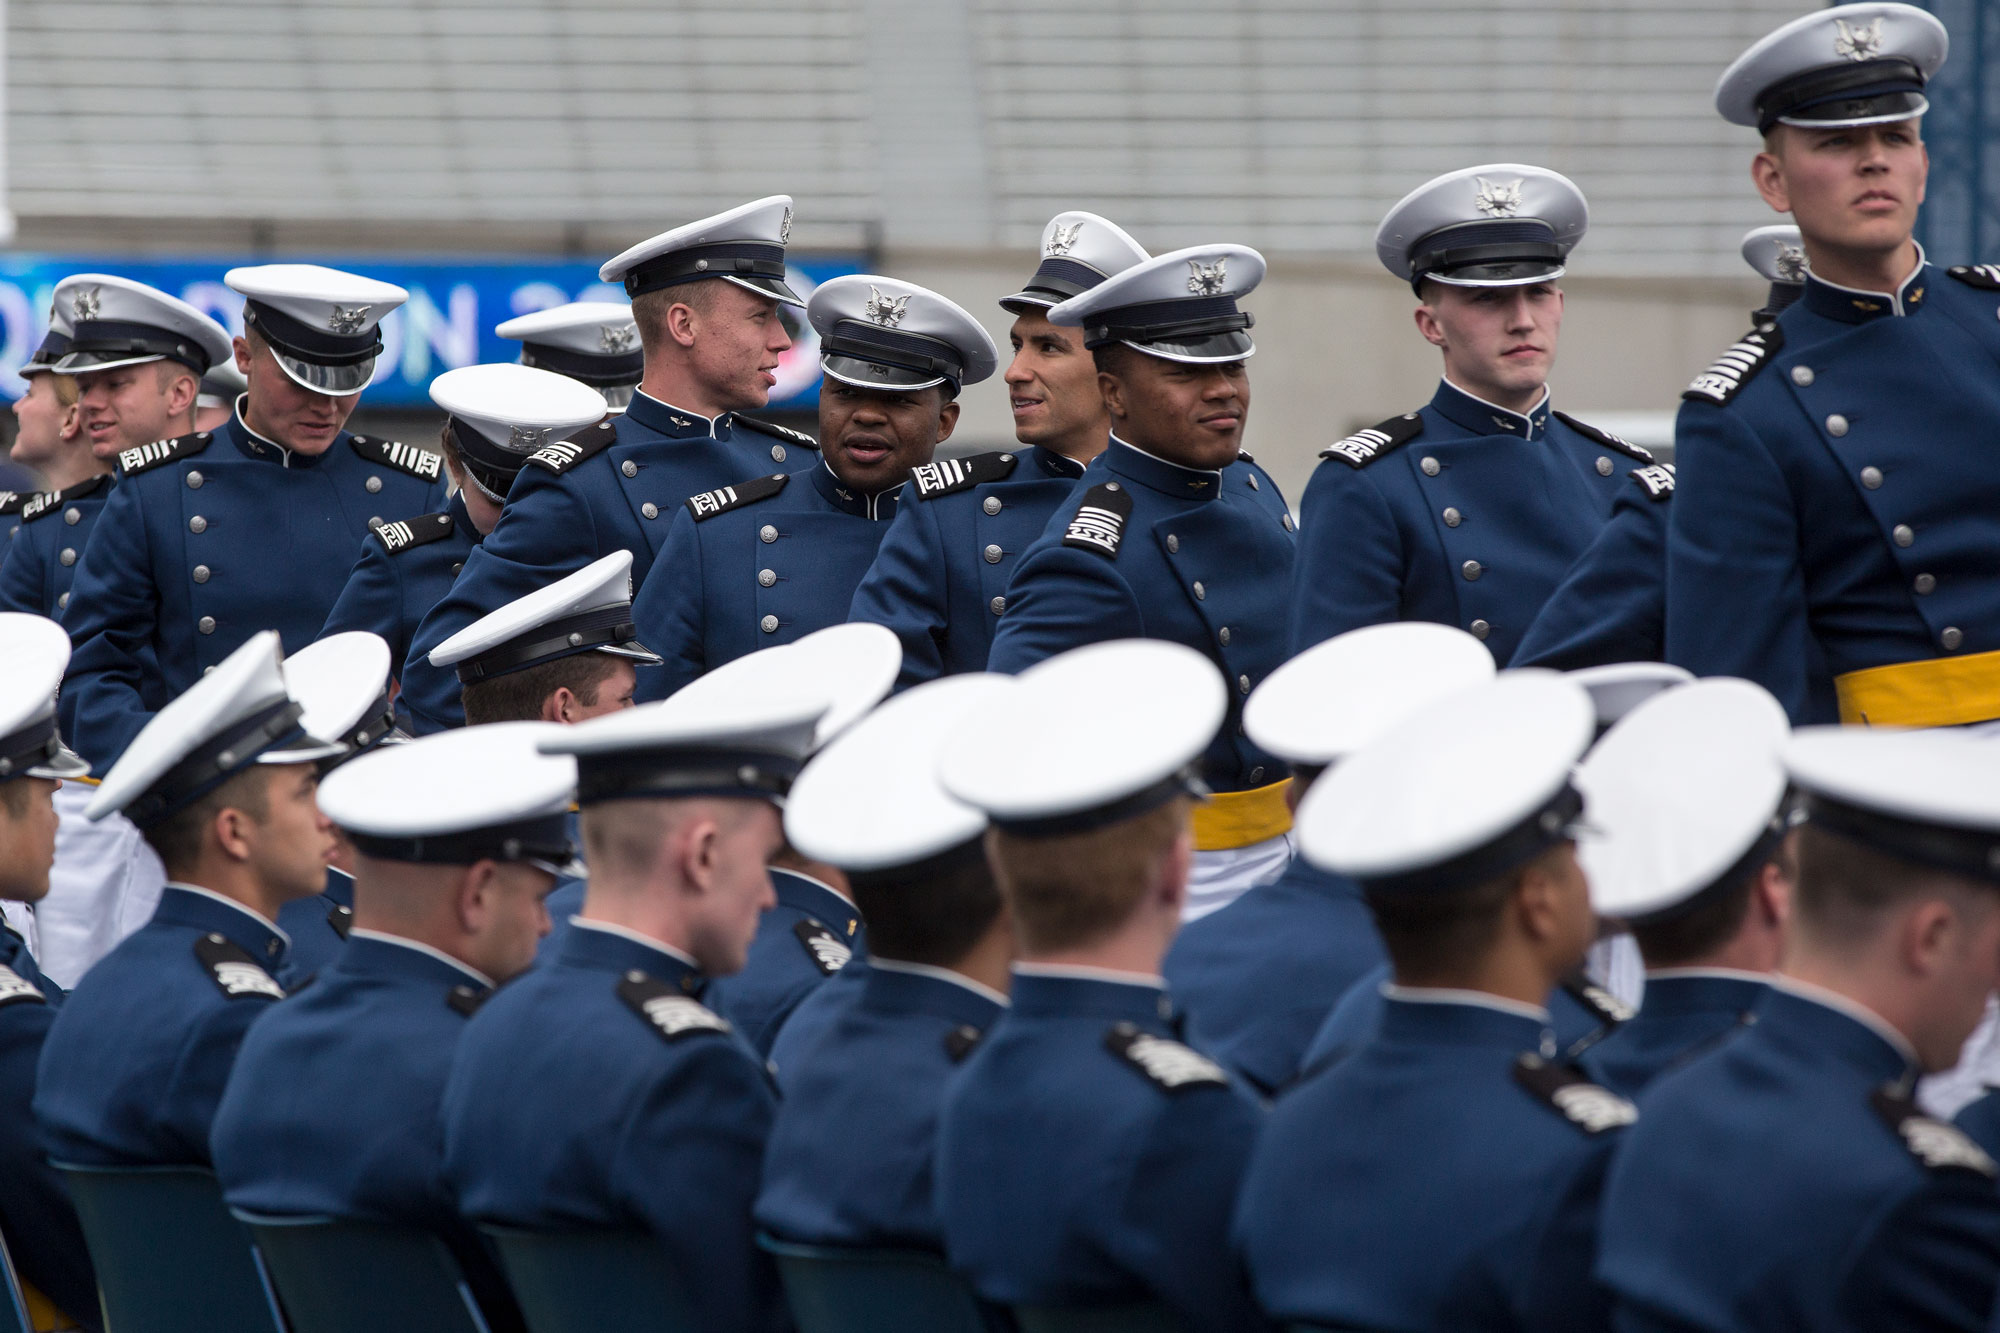 <p>U.S. Air Force Academy graduates line up to collect their diplomas and shake hands with President Donald Trump at the commencement ceremony Thursday, May 30.</p>